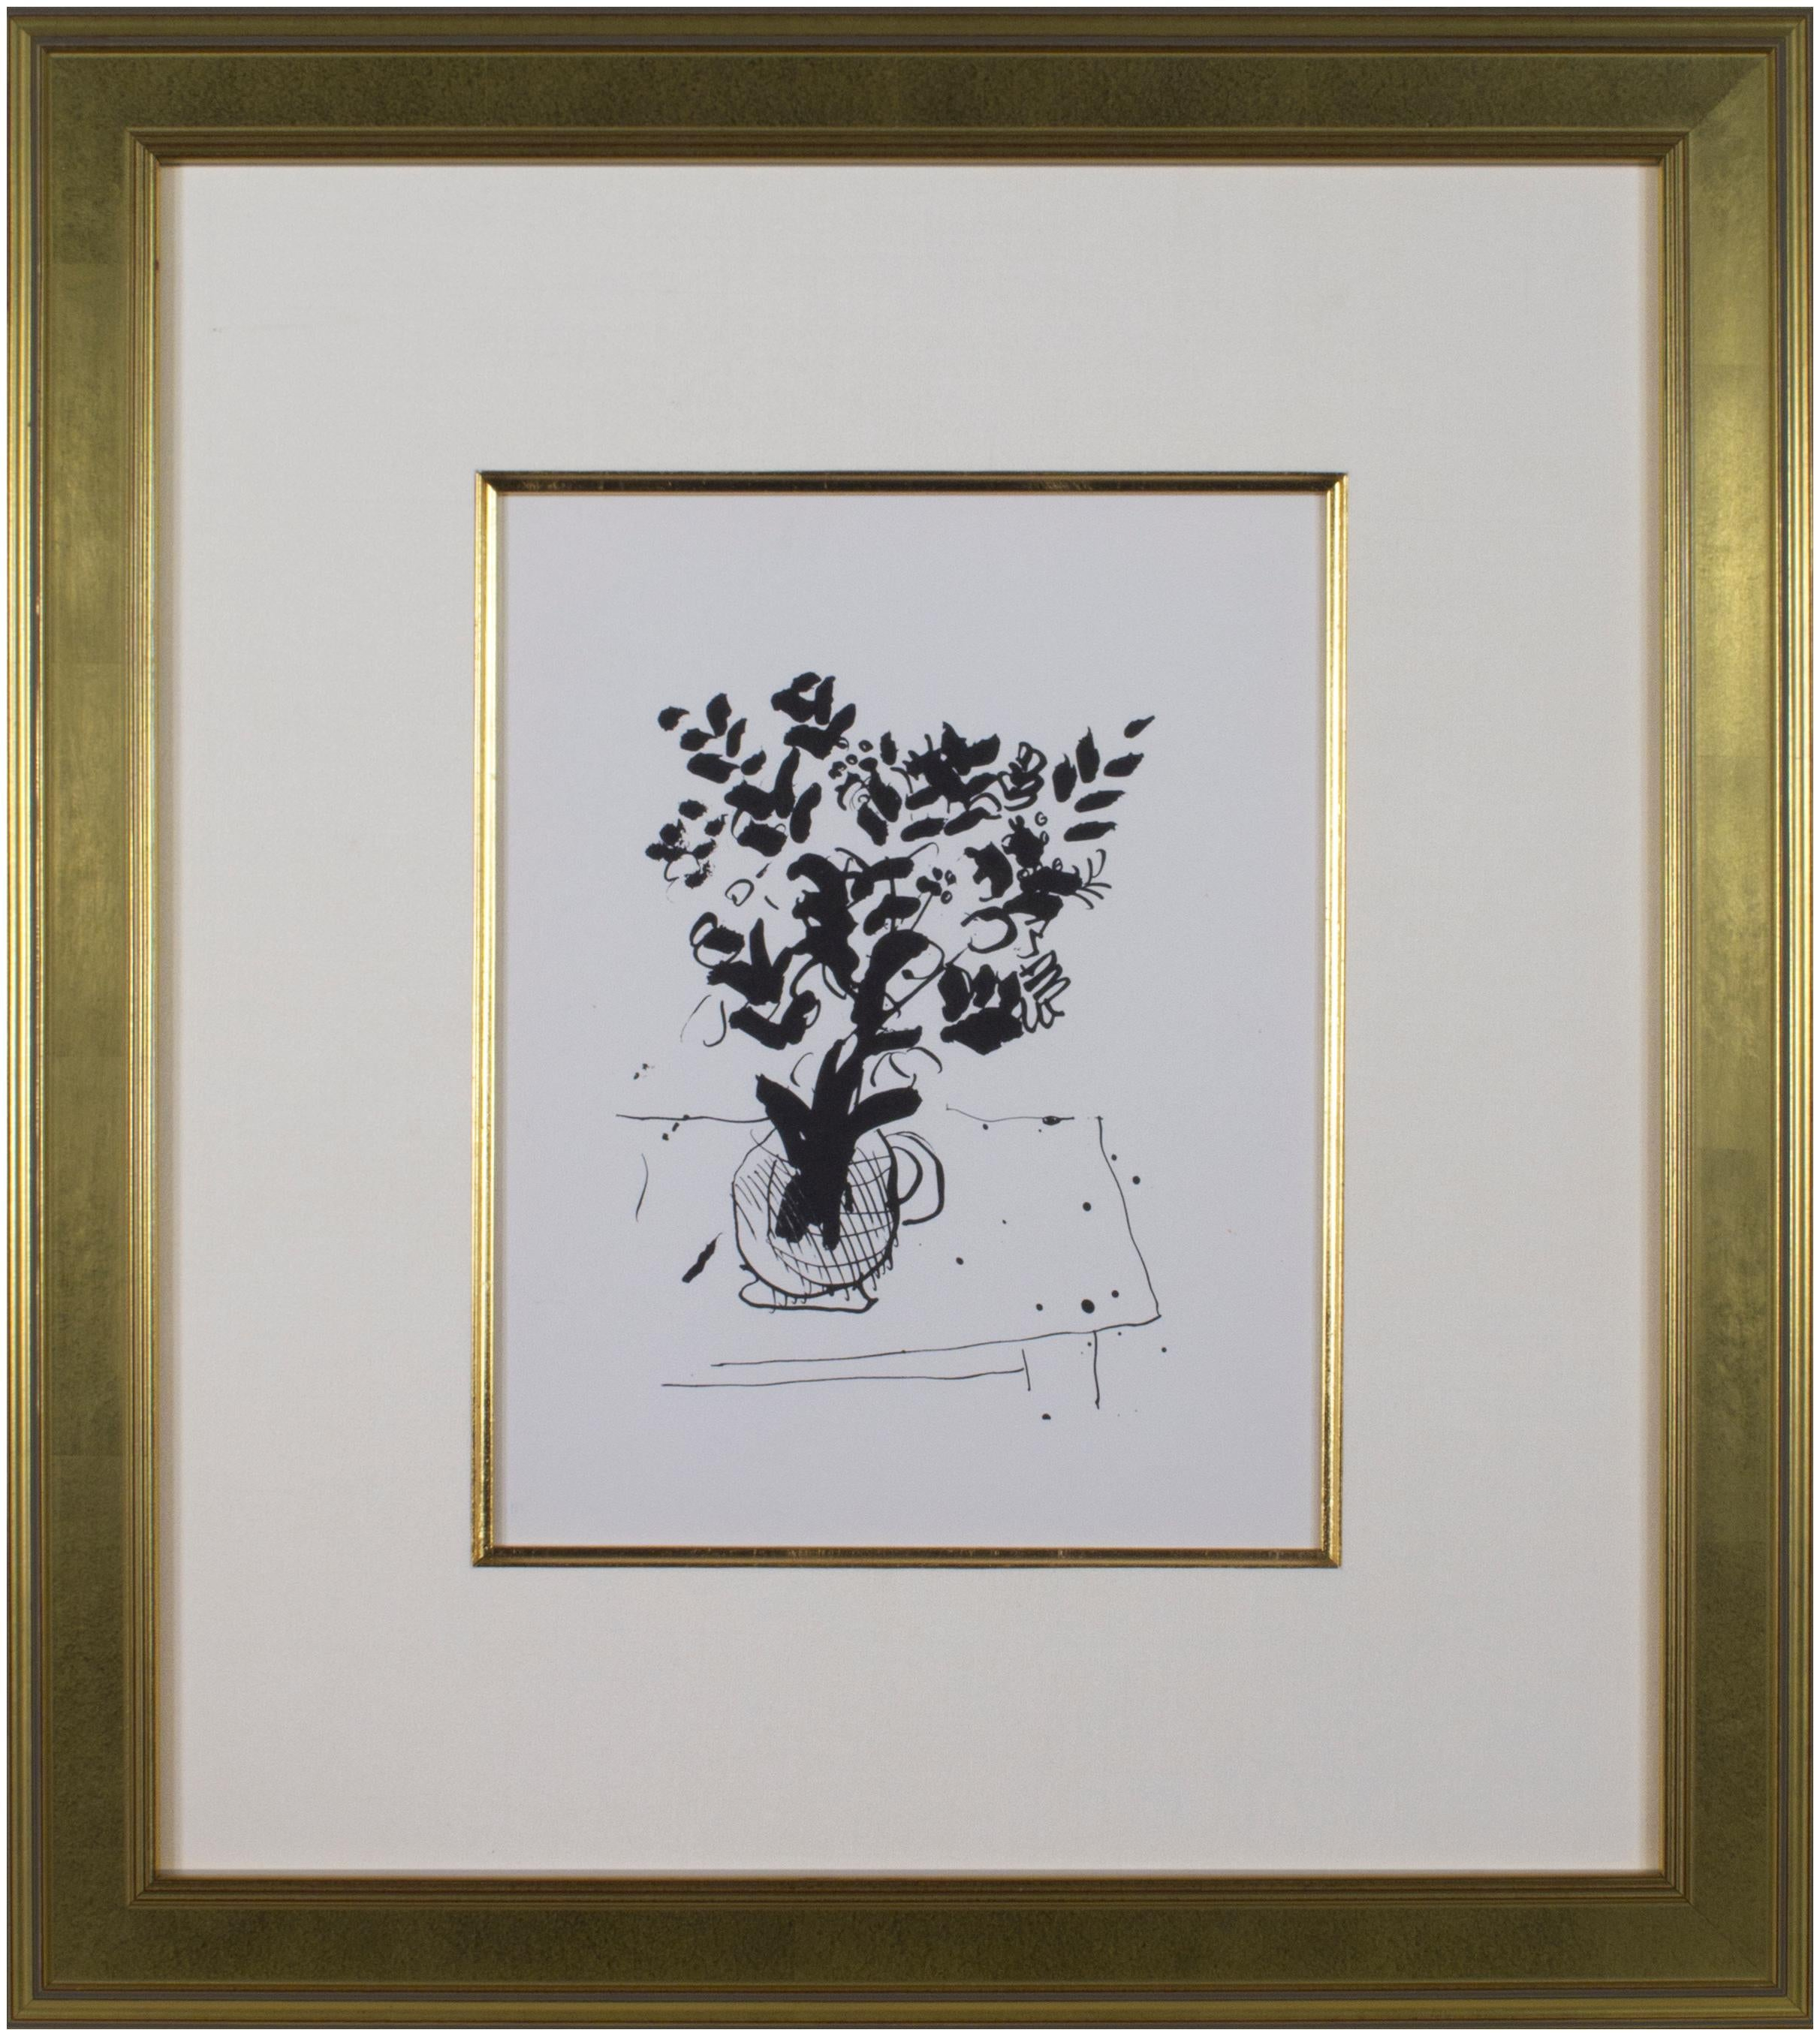 Black and White Bouquet in Vase on Table, Marc Chagall lithograph